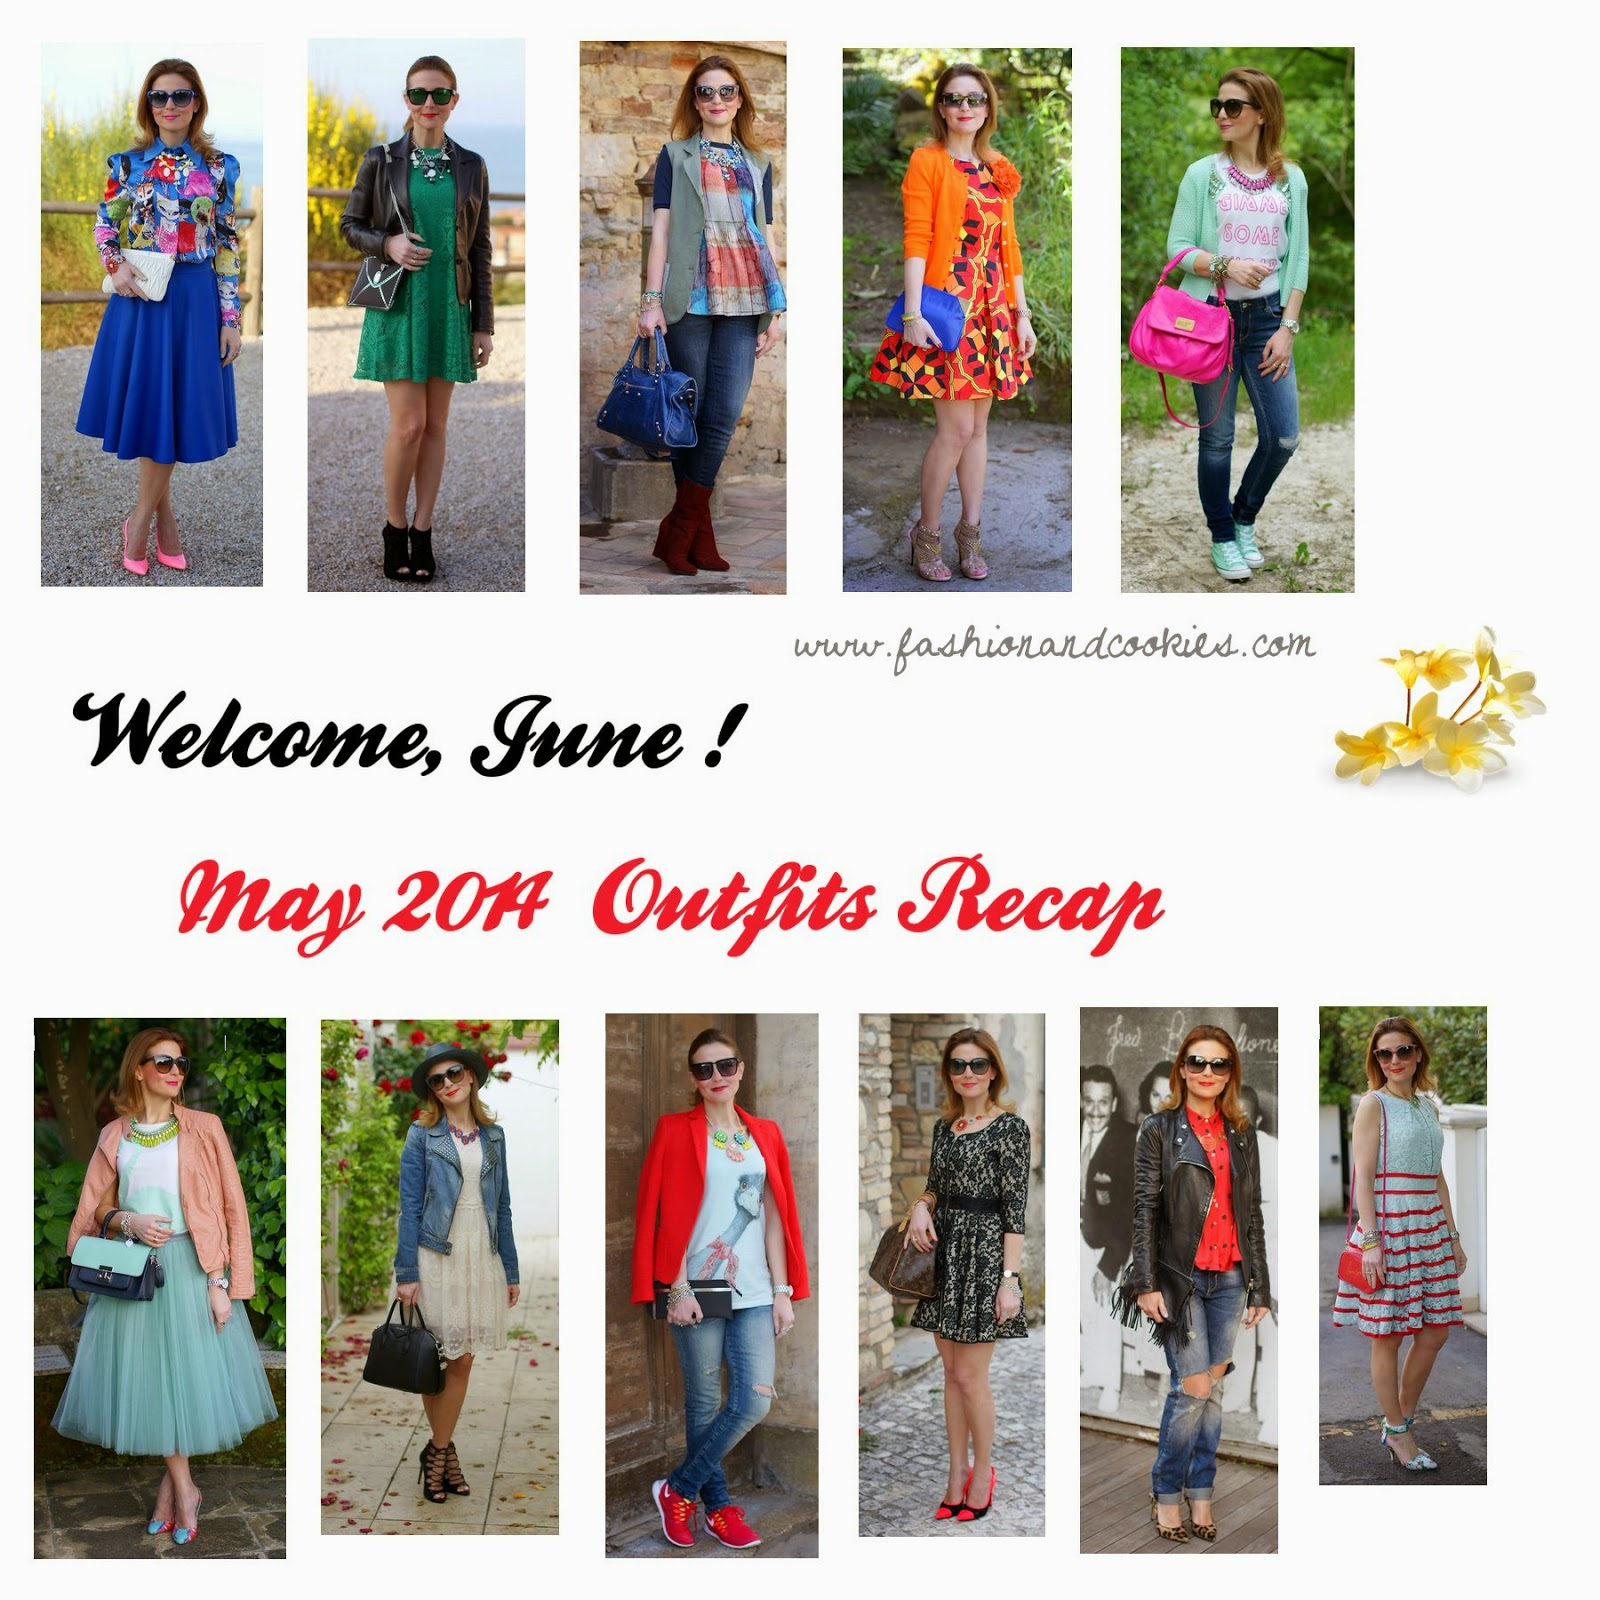 welcome june, may 2014 outfits recap, Fashion and Cookies, fashion blog